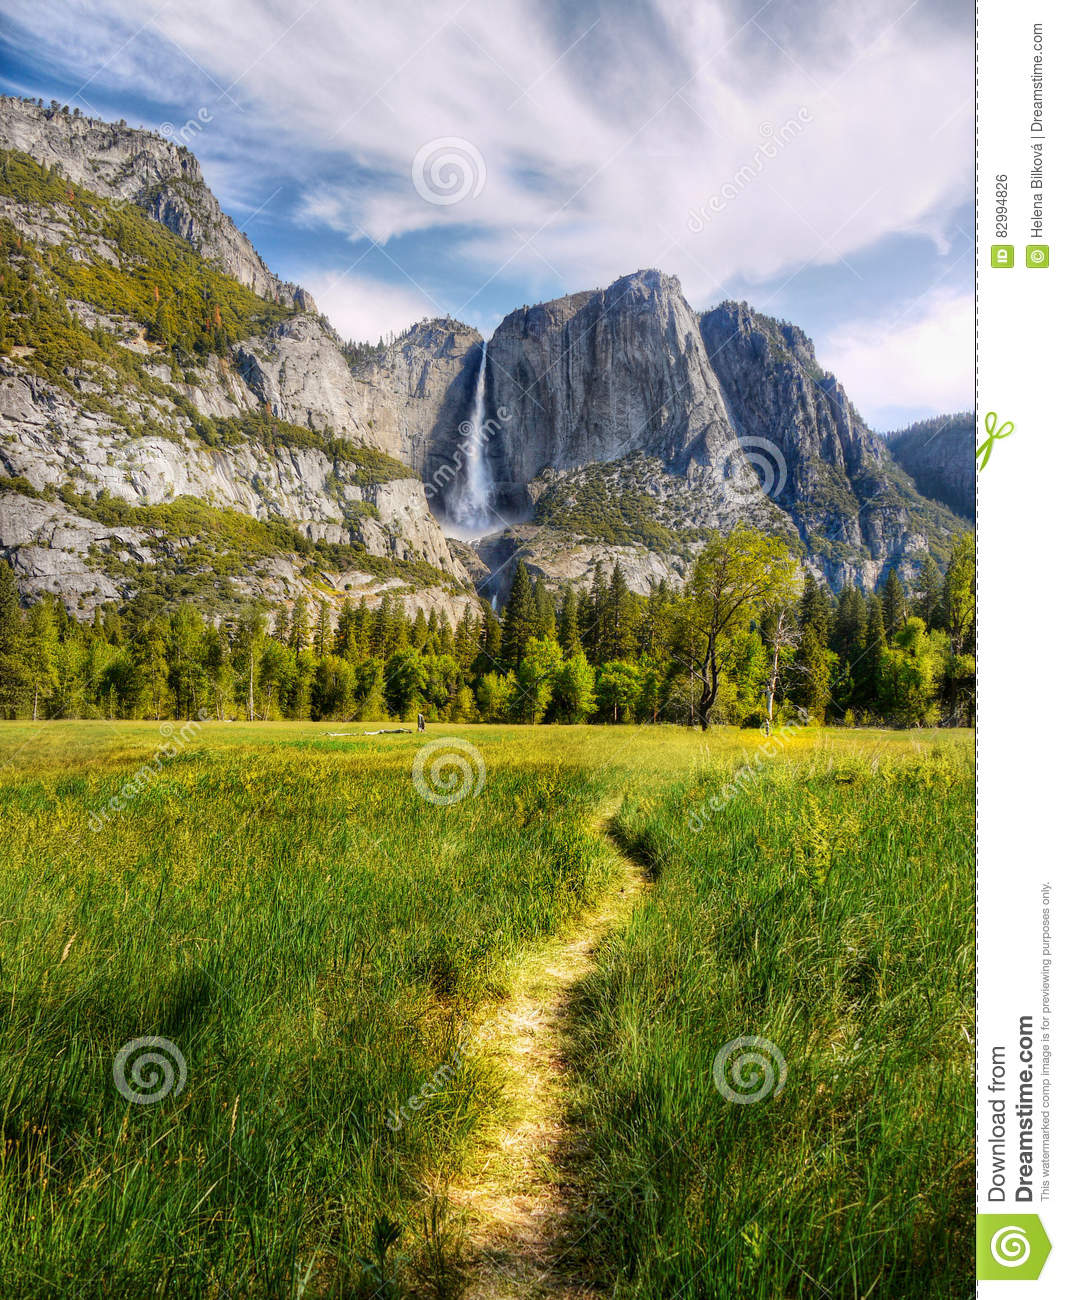 Yosemite Valley, National Park